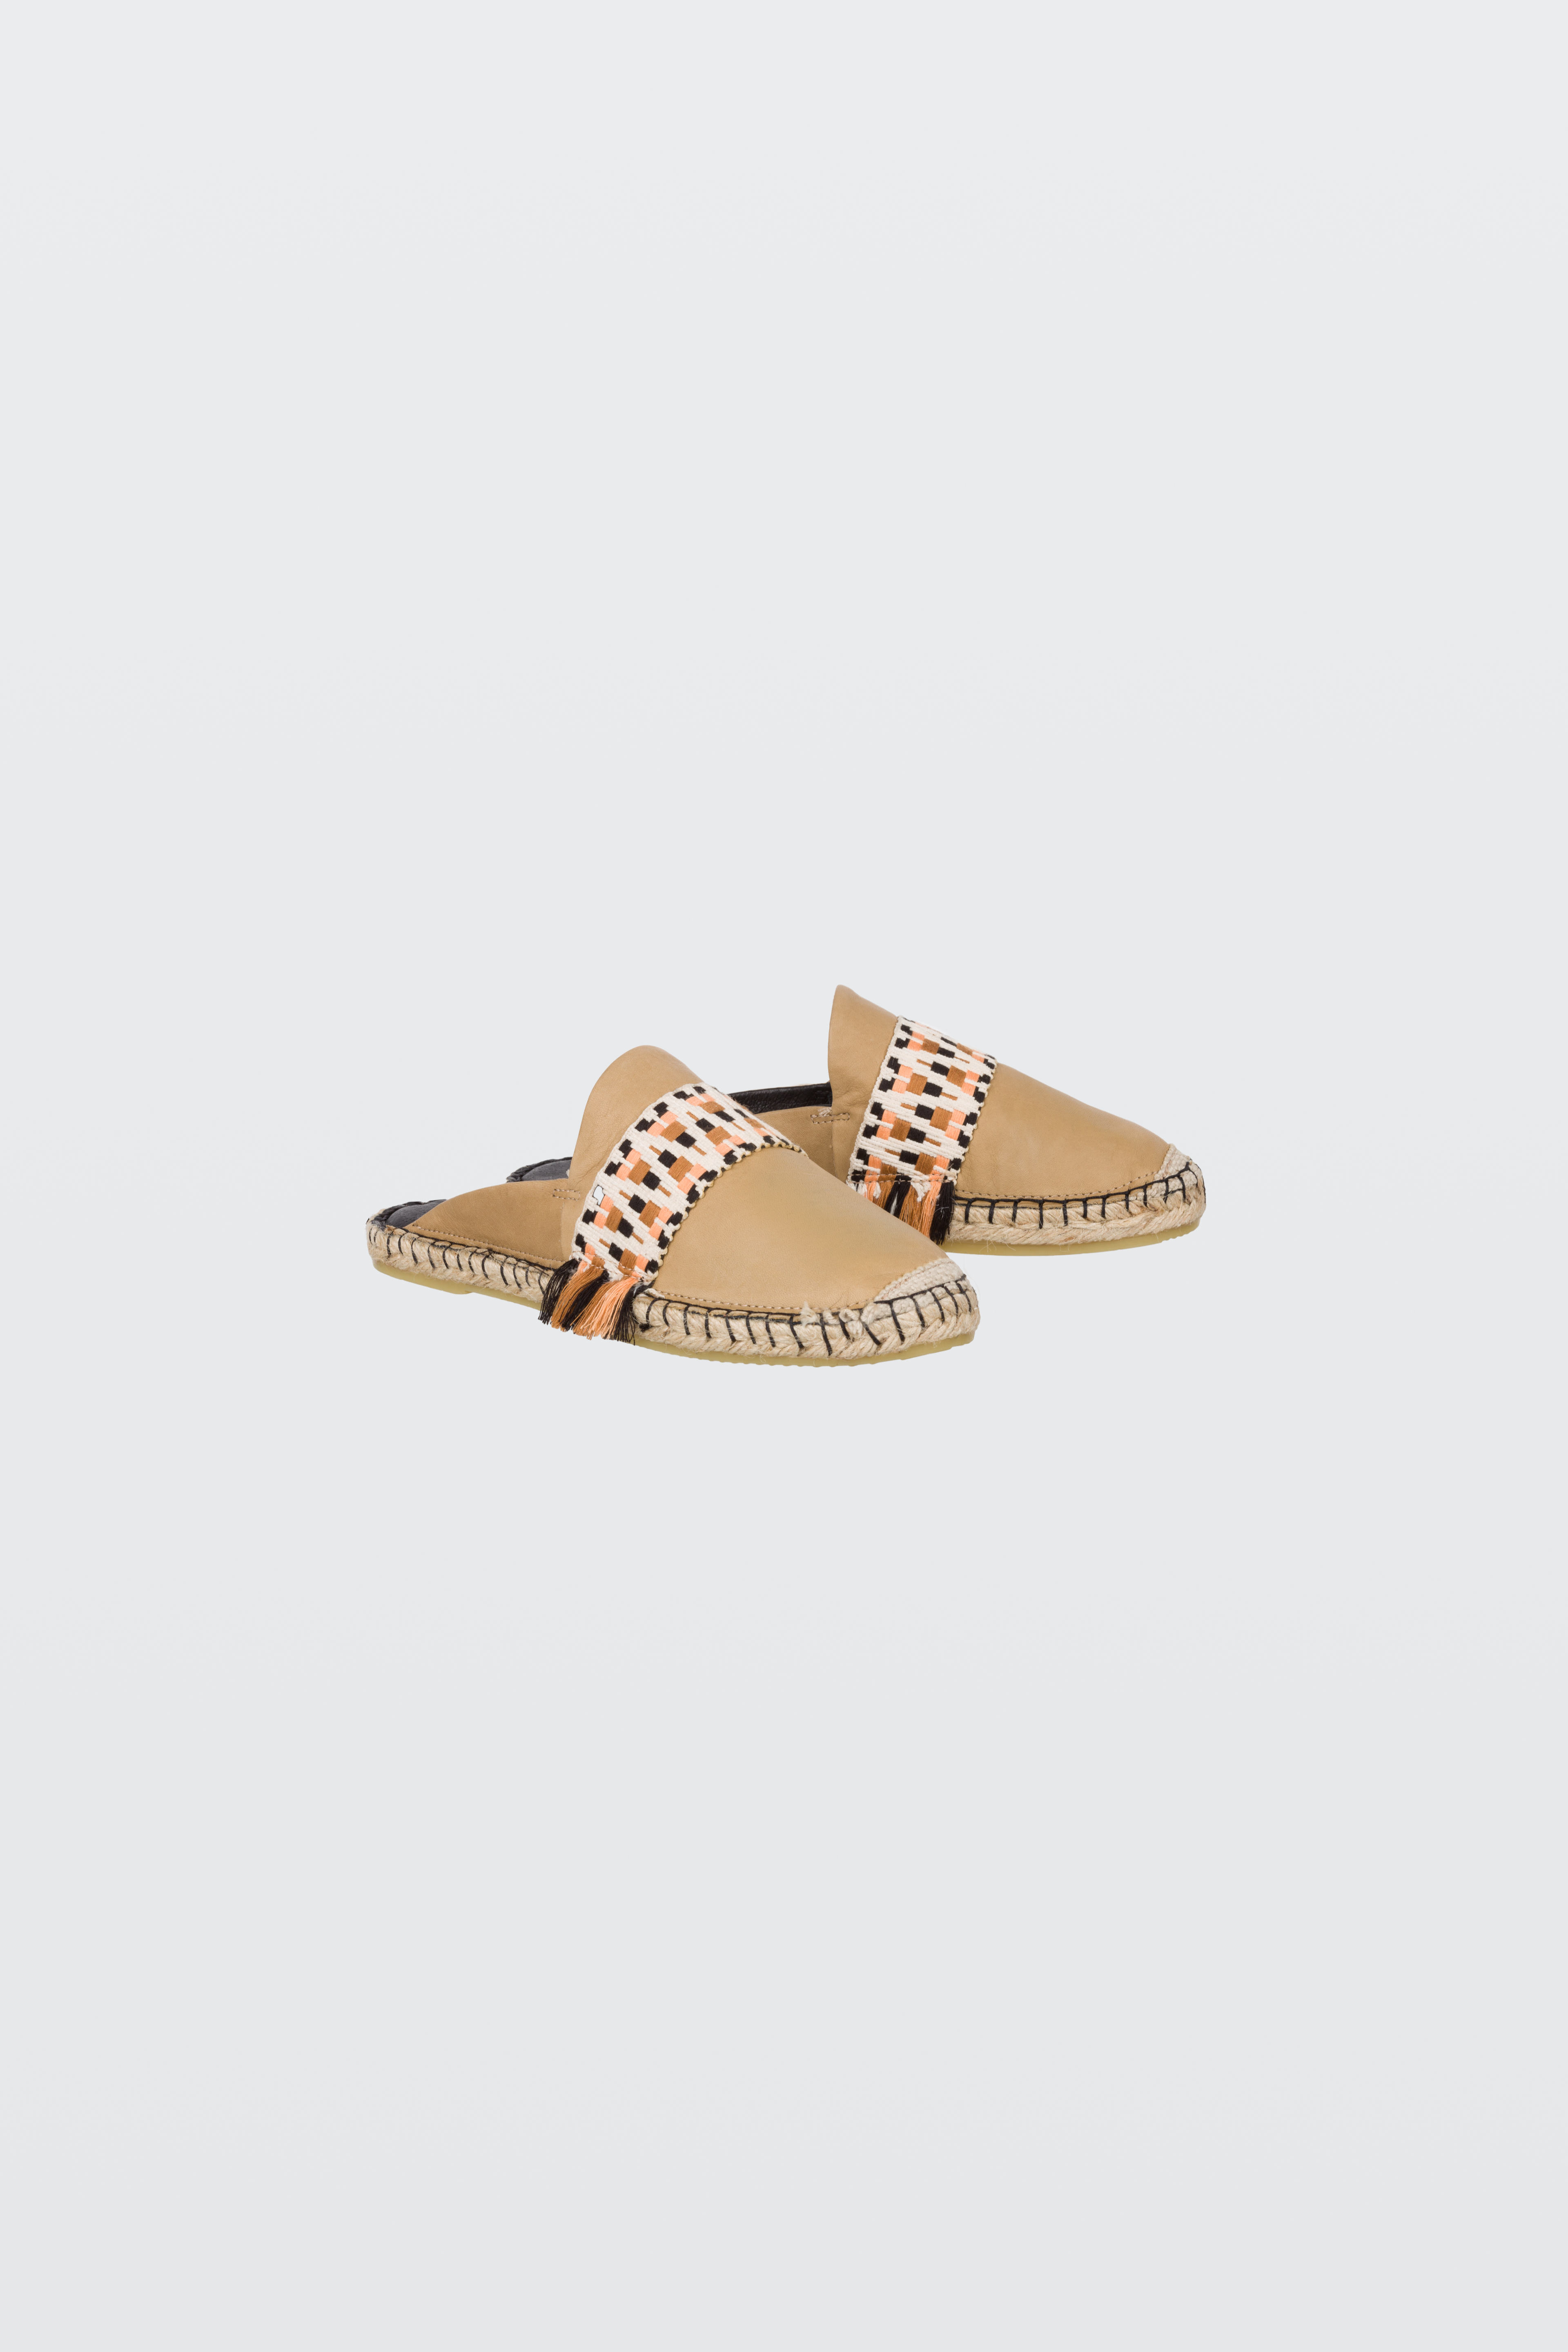 SUMMER SOFTNESS mule espadrille with woven leather 38 Dorothee Schumacher iZHGcL